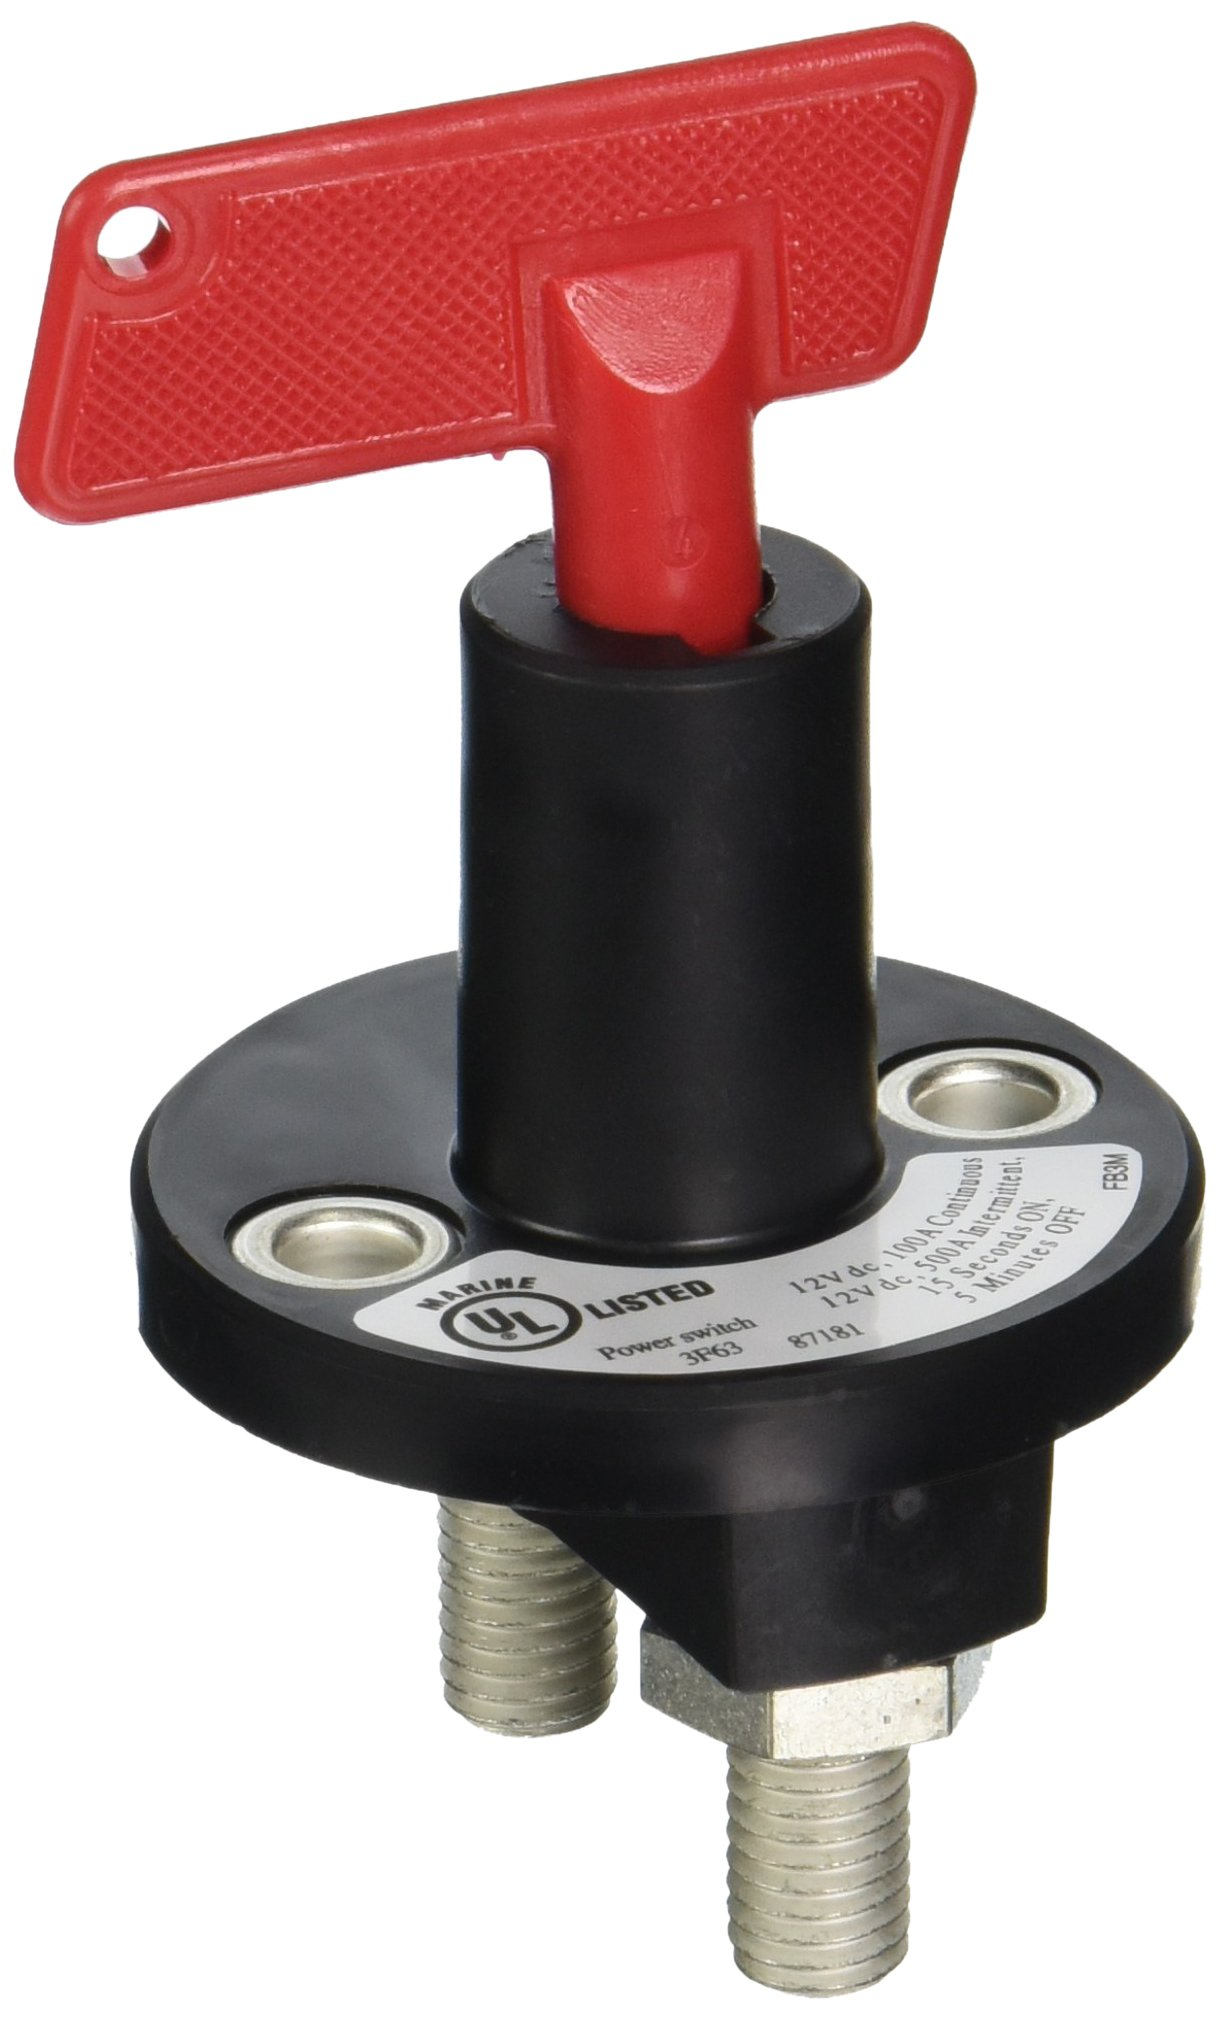 HELLA (2843011) 100-Amp at 24V Battery Disconnect Switch Rotary